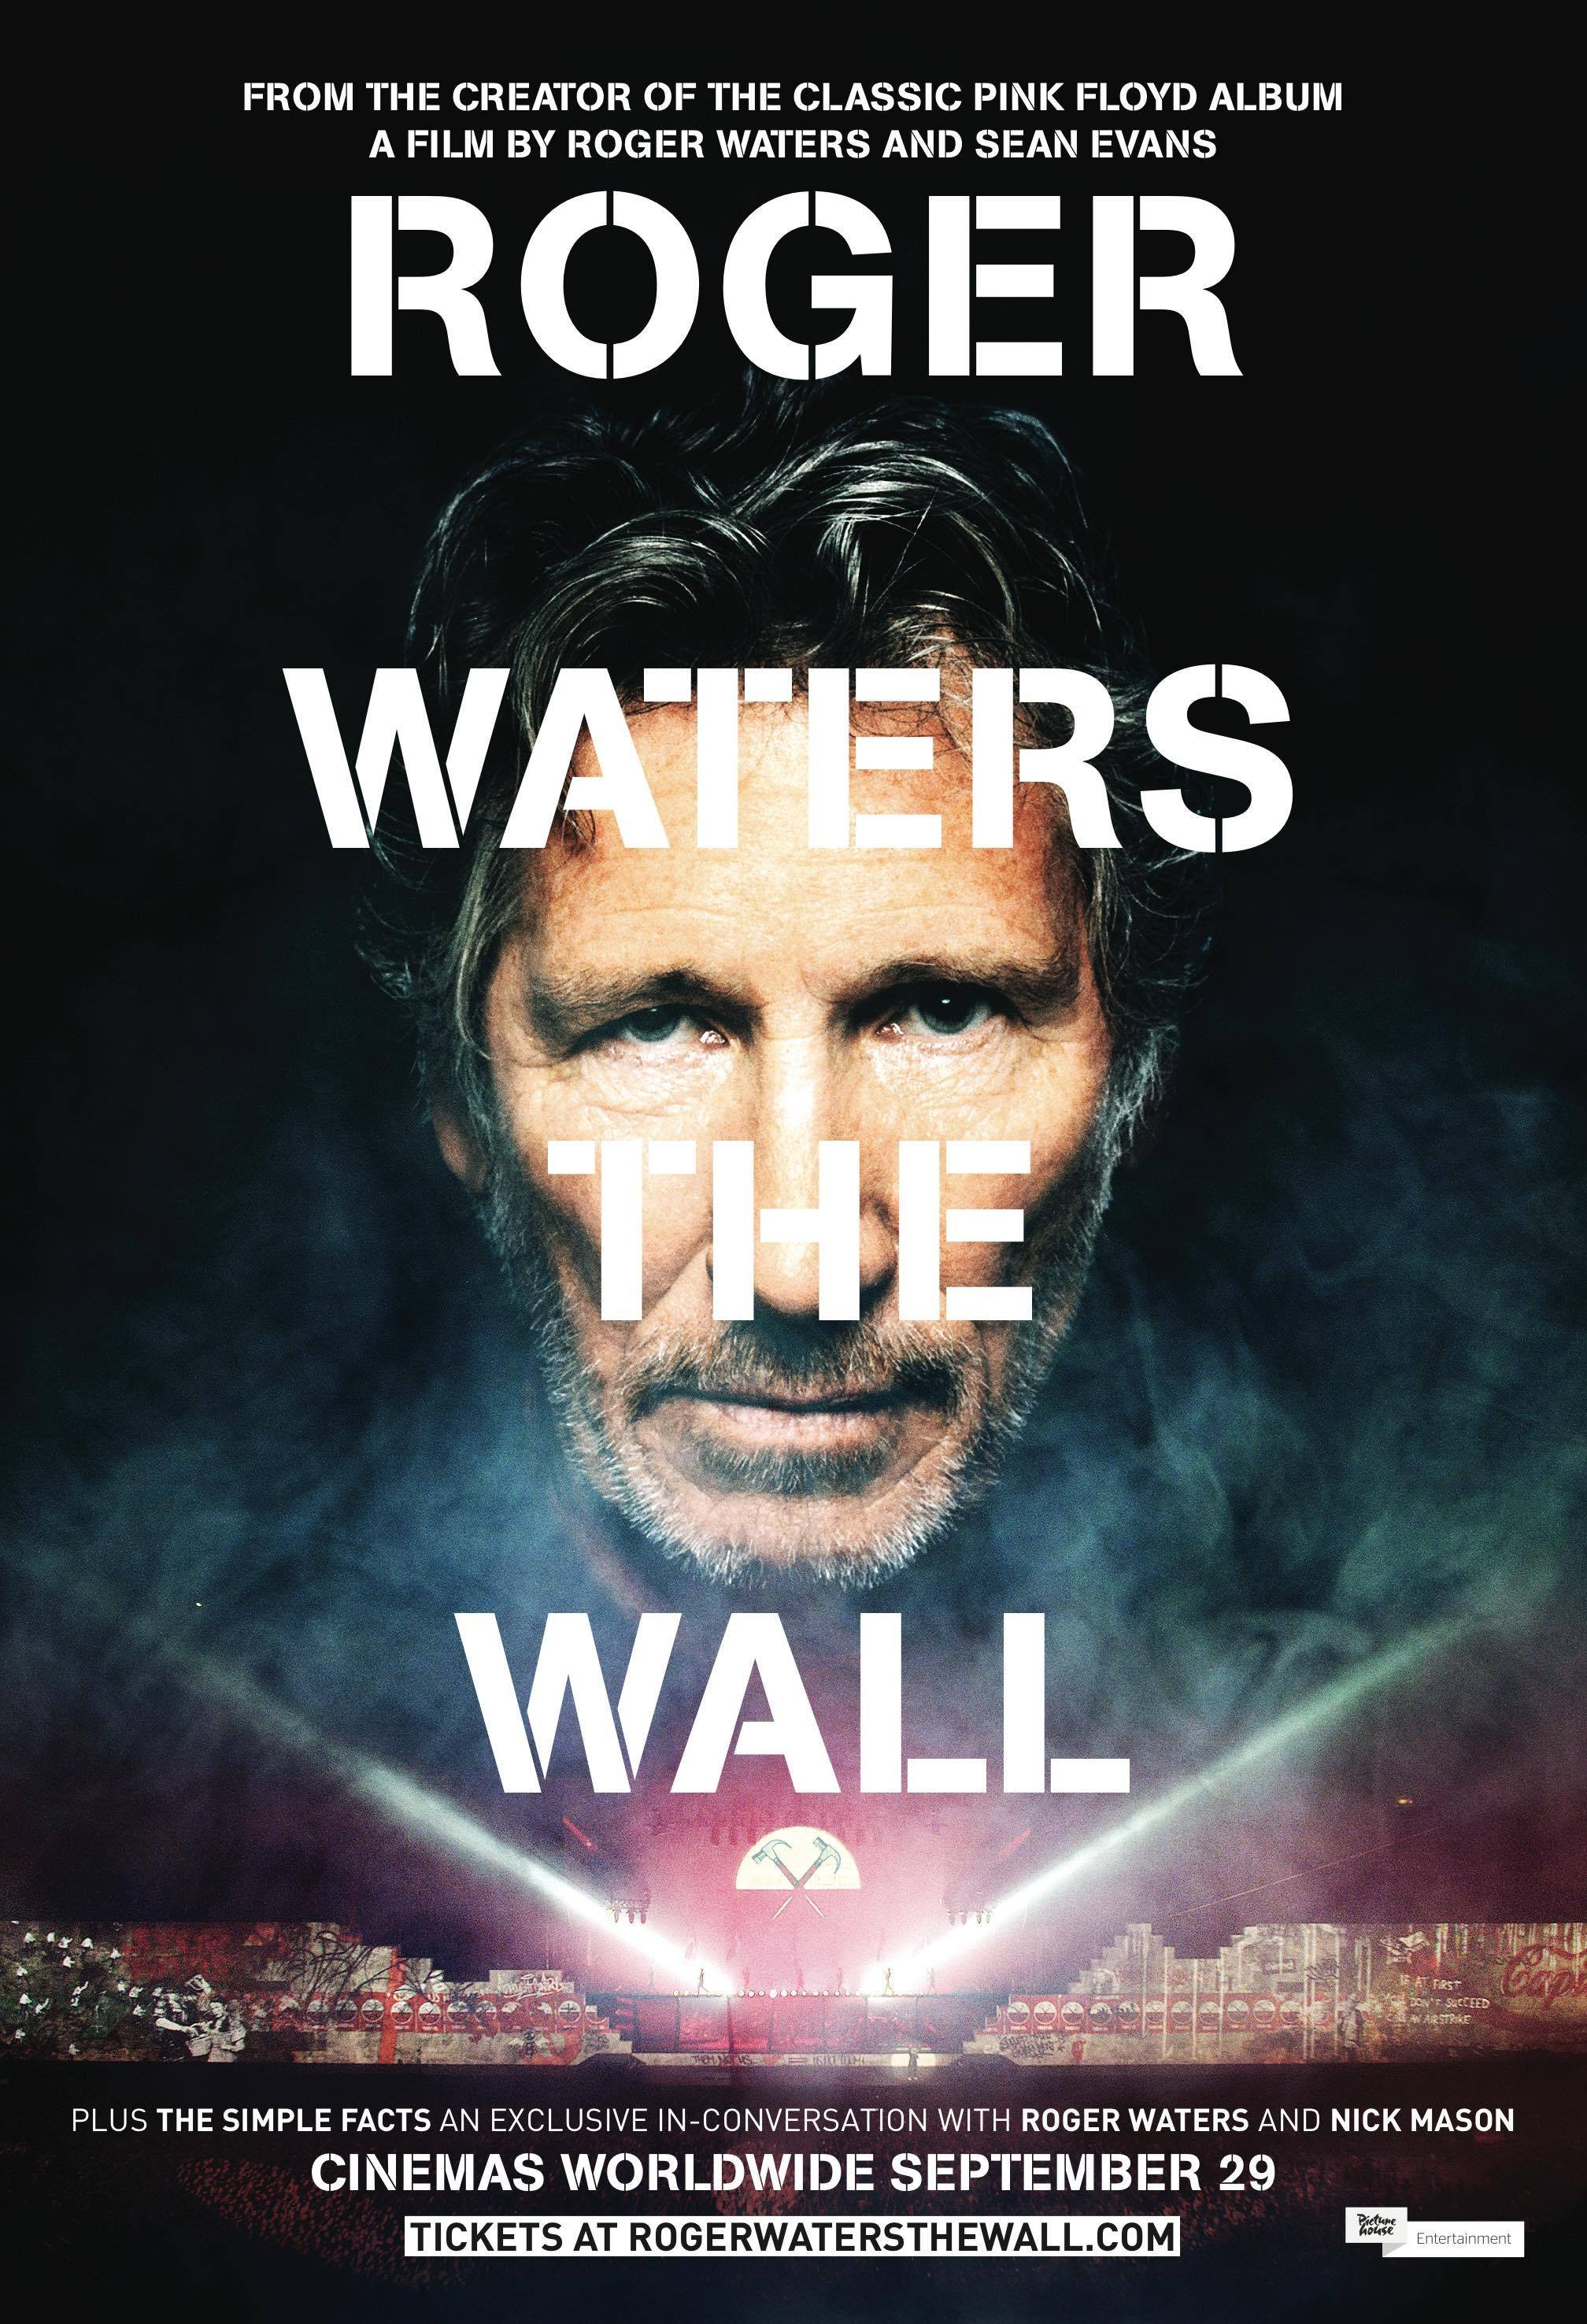 Roger Waters: The Wall (2015) Main Poster